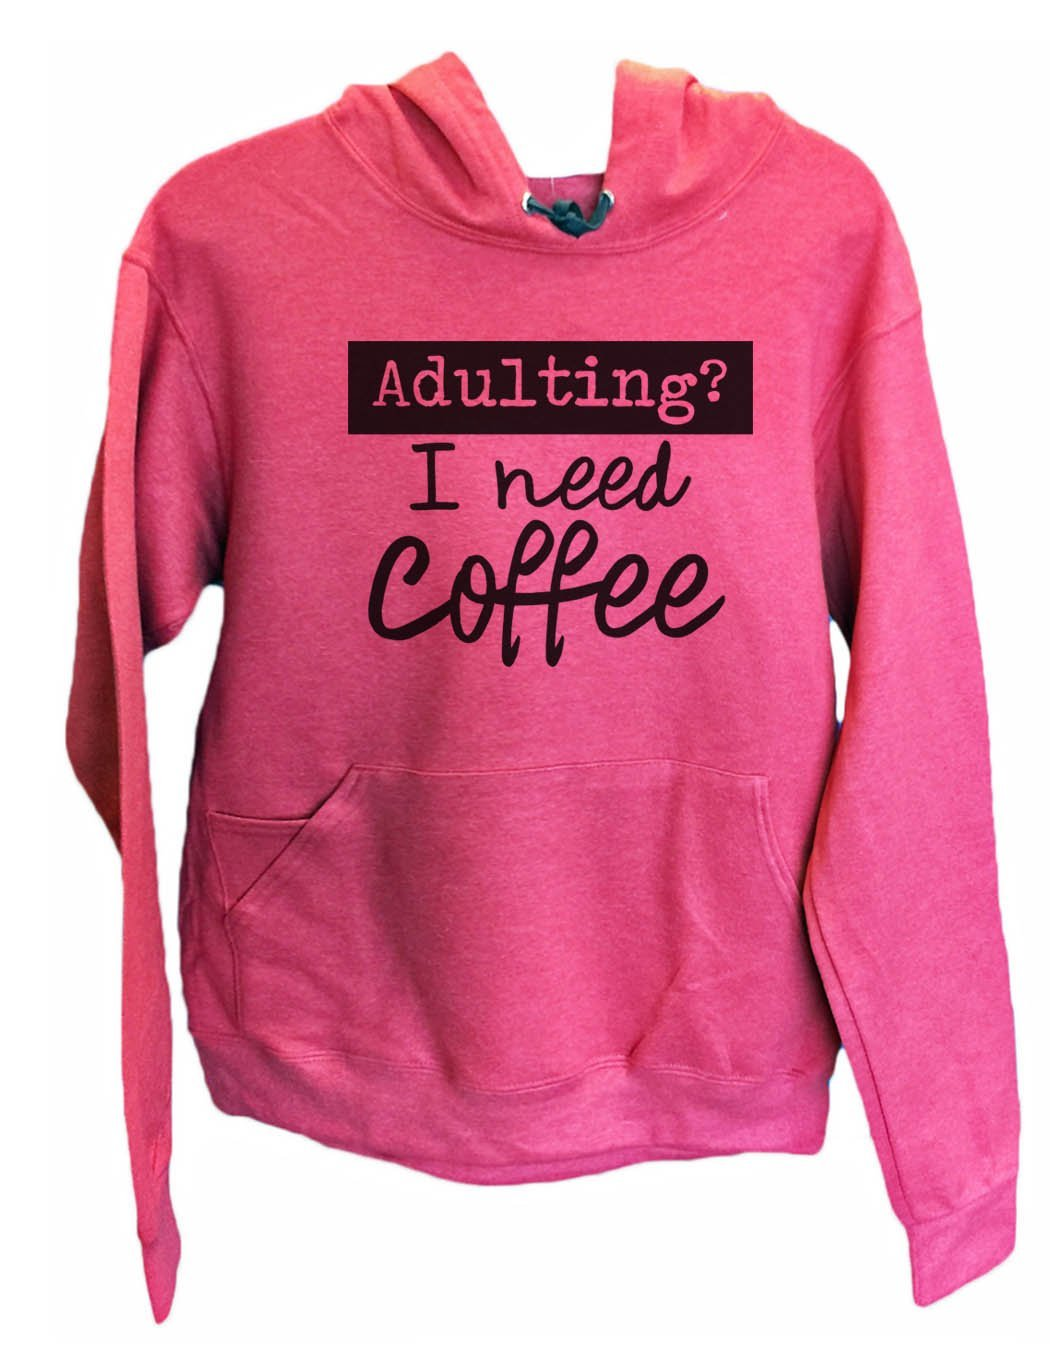 UNISEX HOODIE - Adulting? I Need Coffee - FUNNY MENS AND WOMENS HOODED SWEATSHIRTS - 2207 Funny Shirt